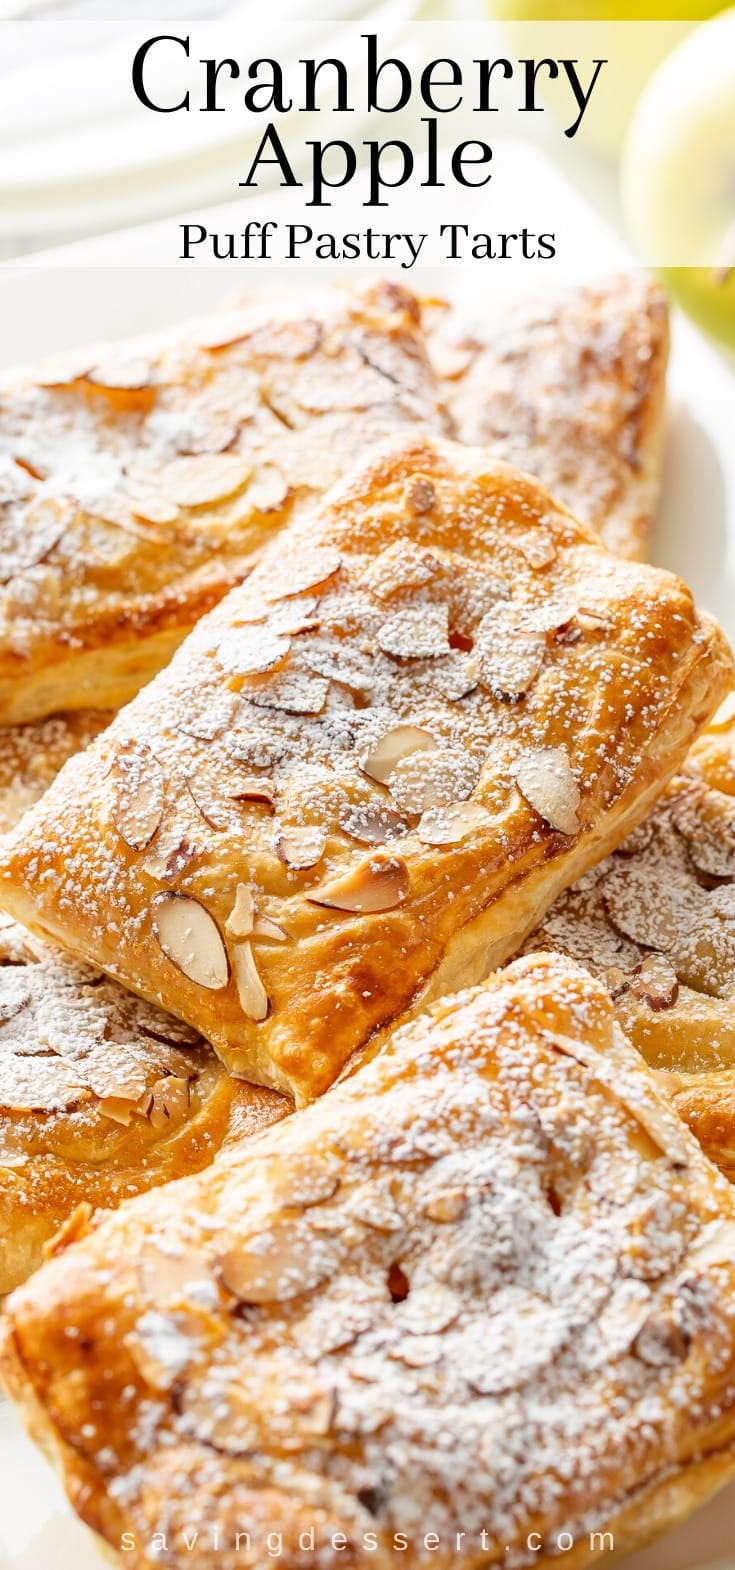 A platter of apple and cranberry puff pastry tarts dusted with powdered sugar and topped with sliced almonds